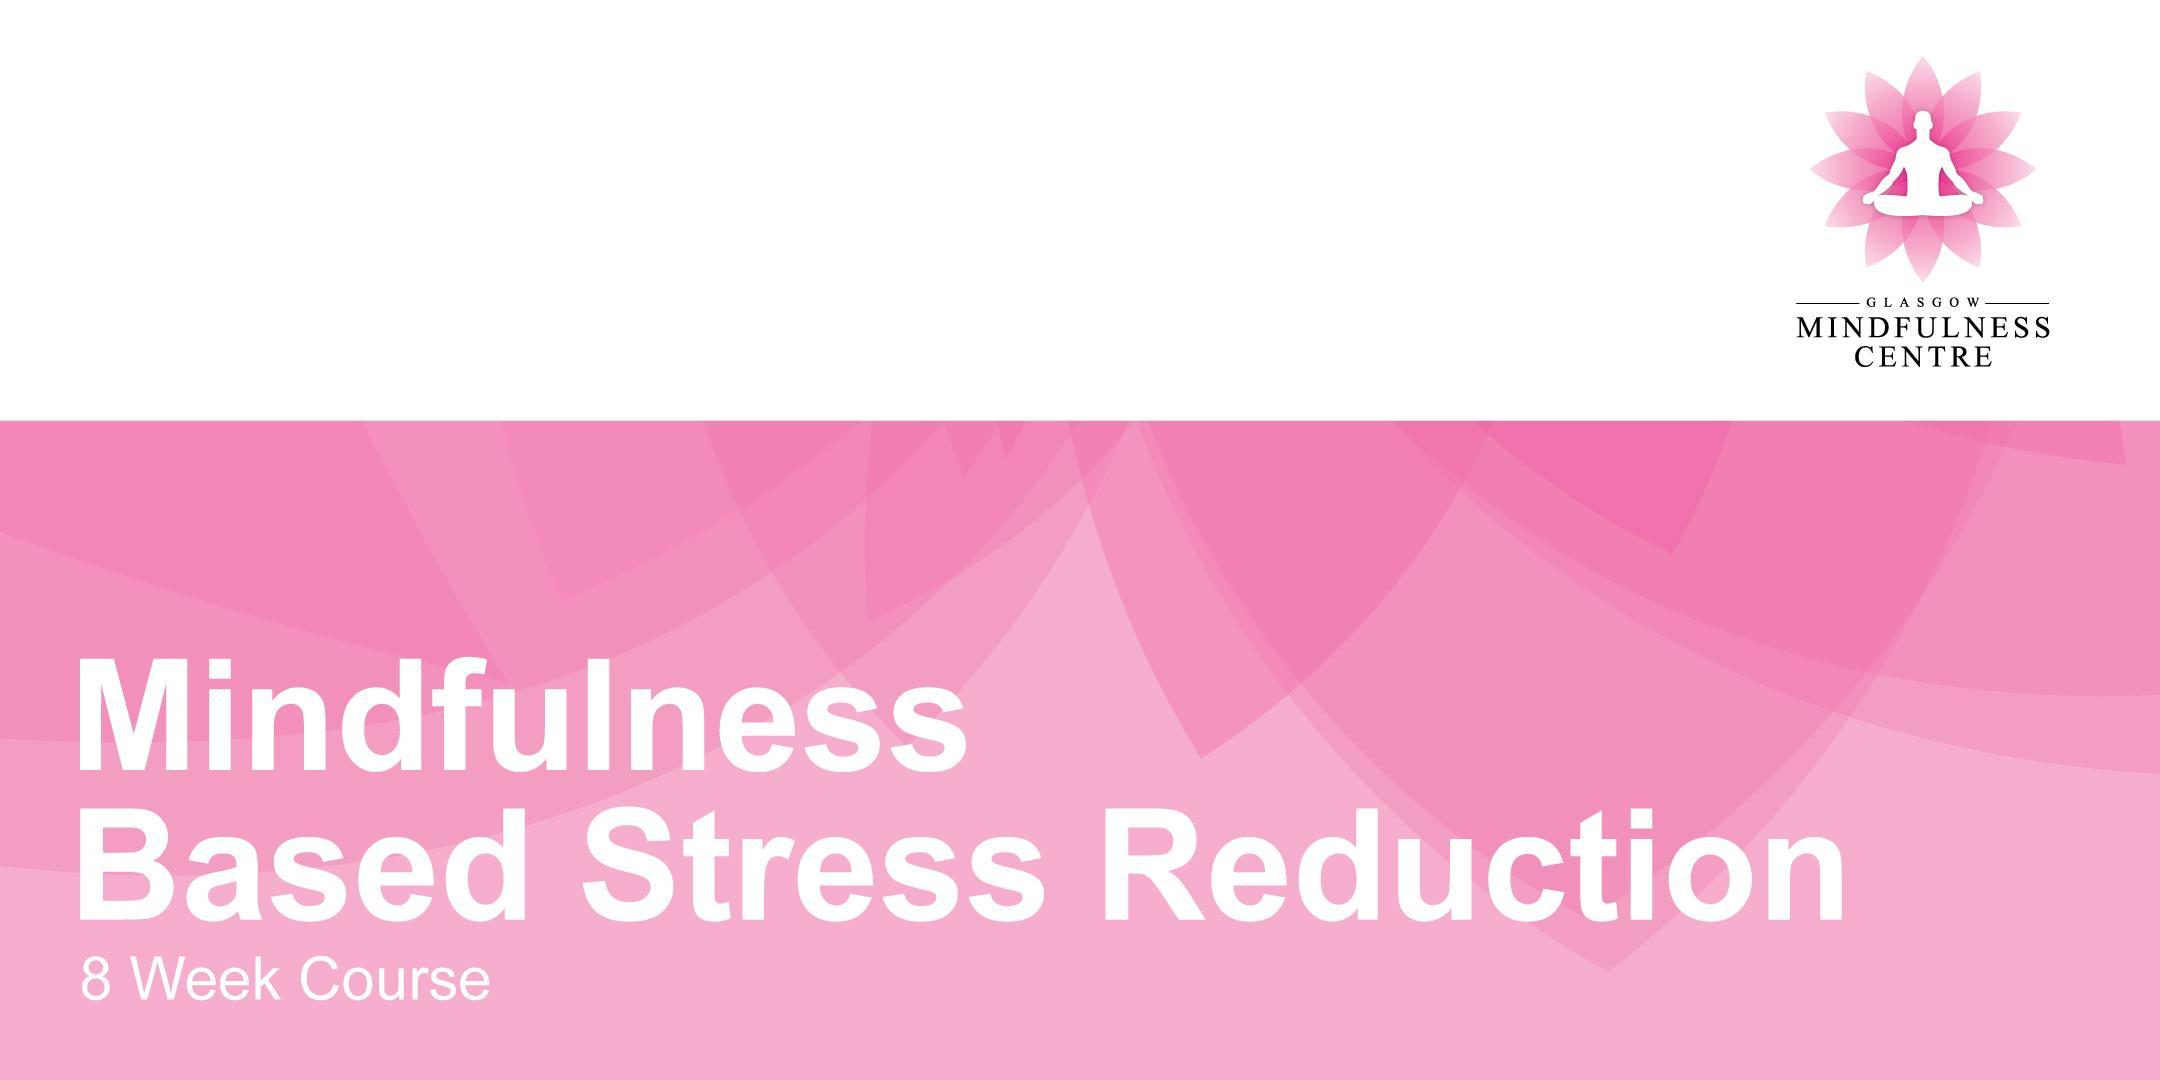 Mindfulness Based Stress Reduction 8 Week Course - Wednesday 29th January 2020